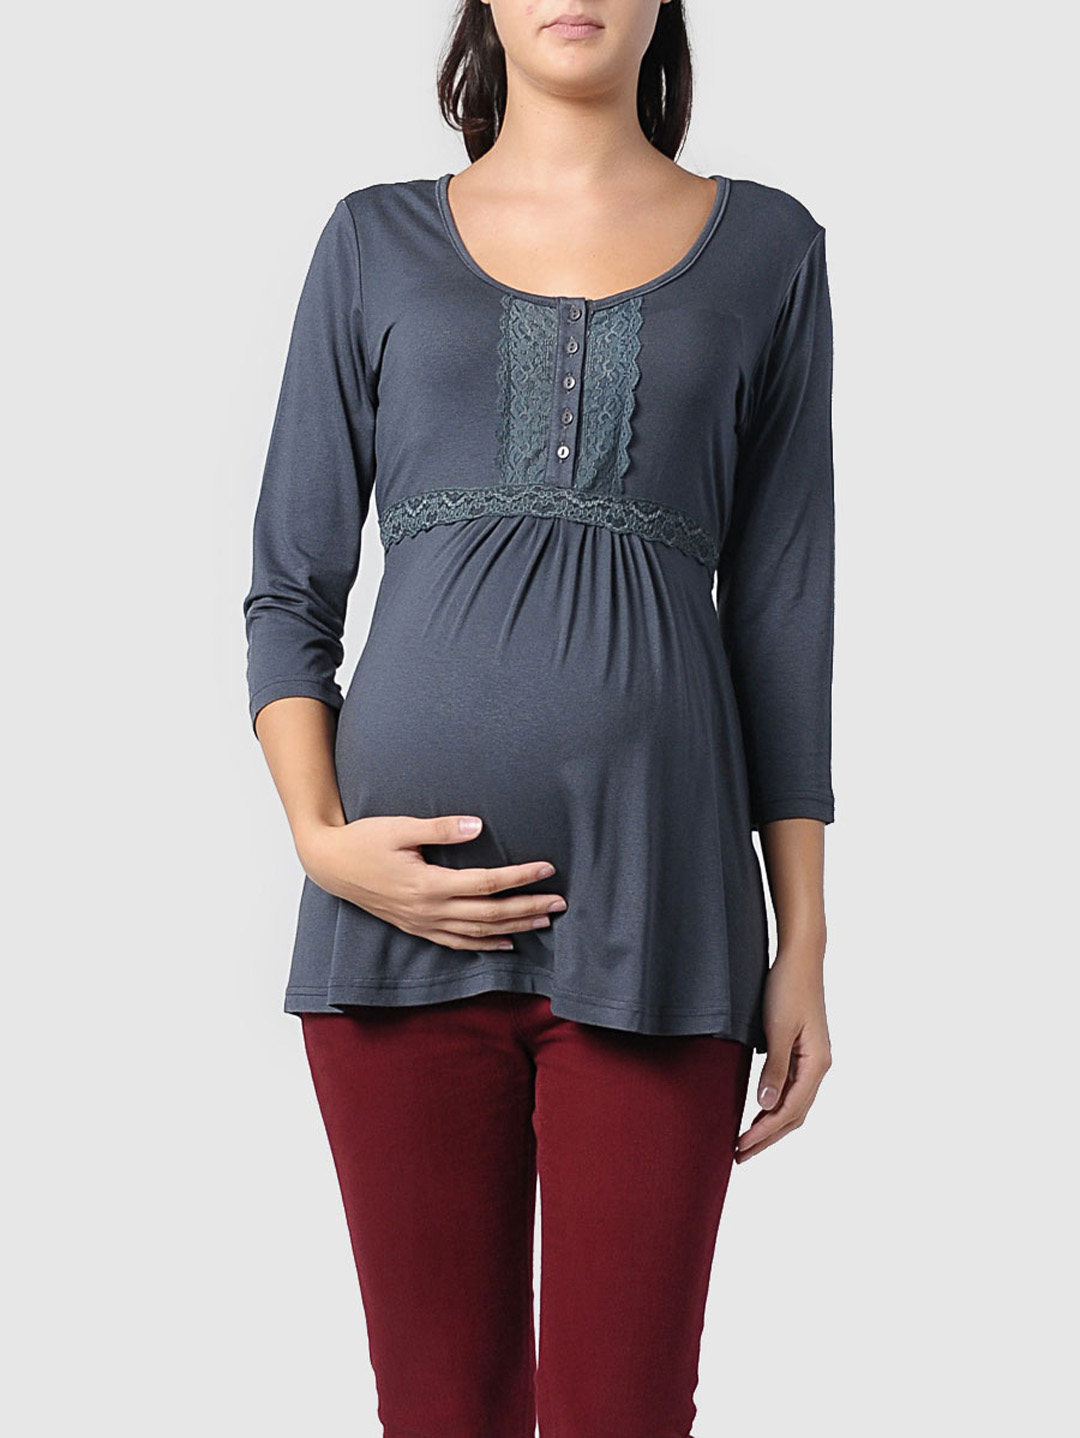 Shop for cute maternity clothes on Groupon. Every day, you'll find stylish yet comfortable maternity tops, dresses, leggings, bras, activewear, and more. Women's Maternity Halloween Long-Sleeve Tee. Women's Maternity Kangaroo Hooded for Baby Carriers Coat.